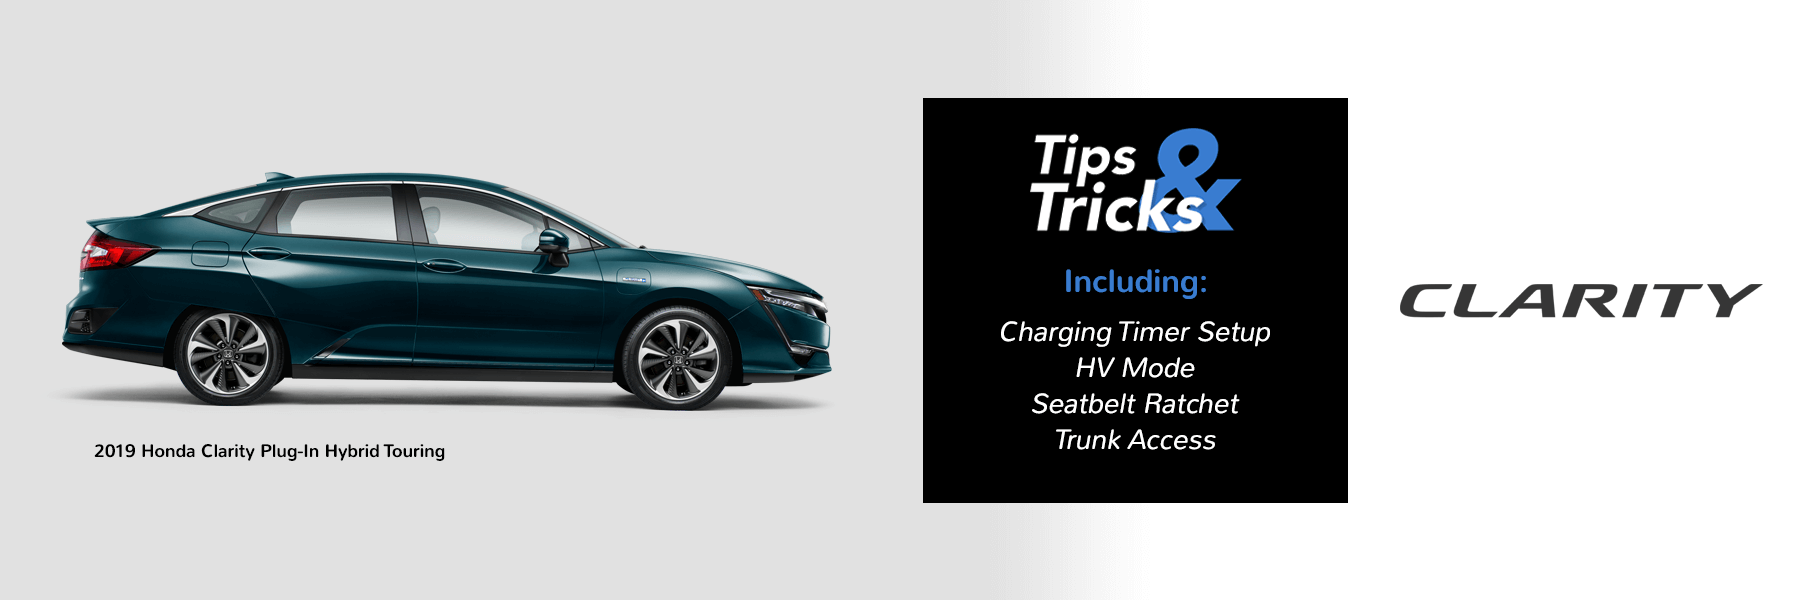 Honda Tips and Tricks 2019 Clarity Slider